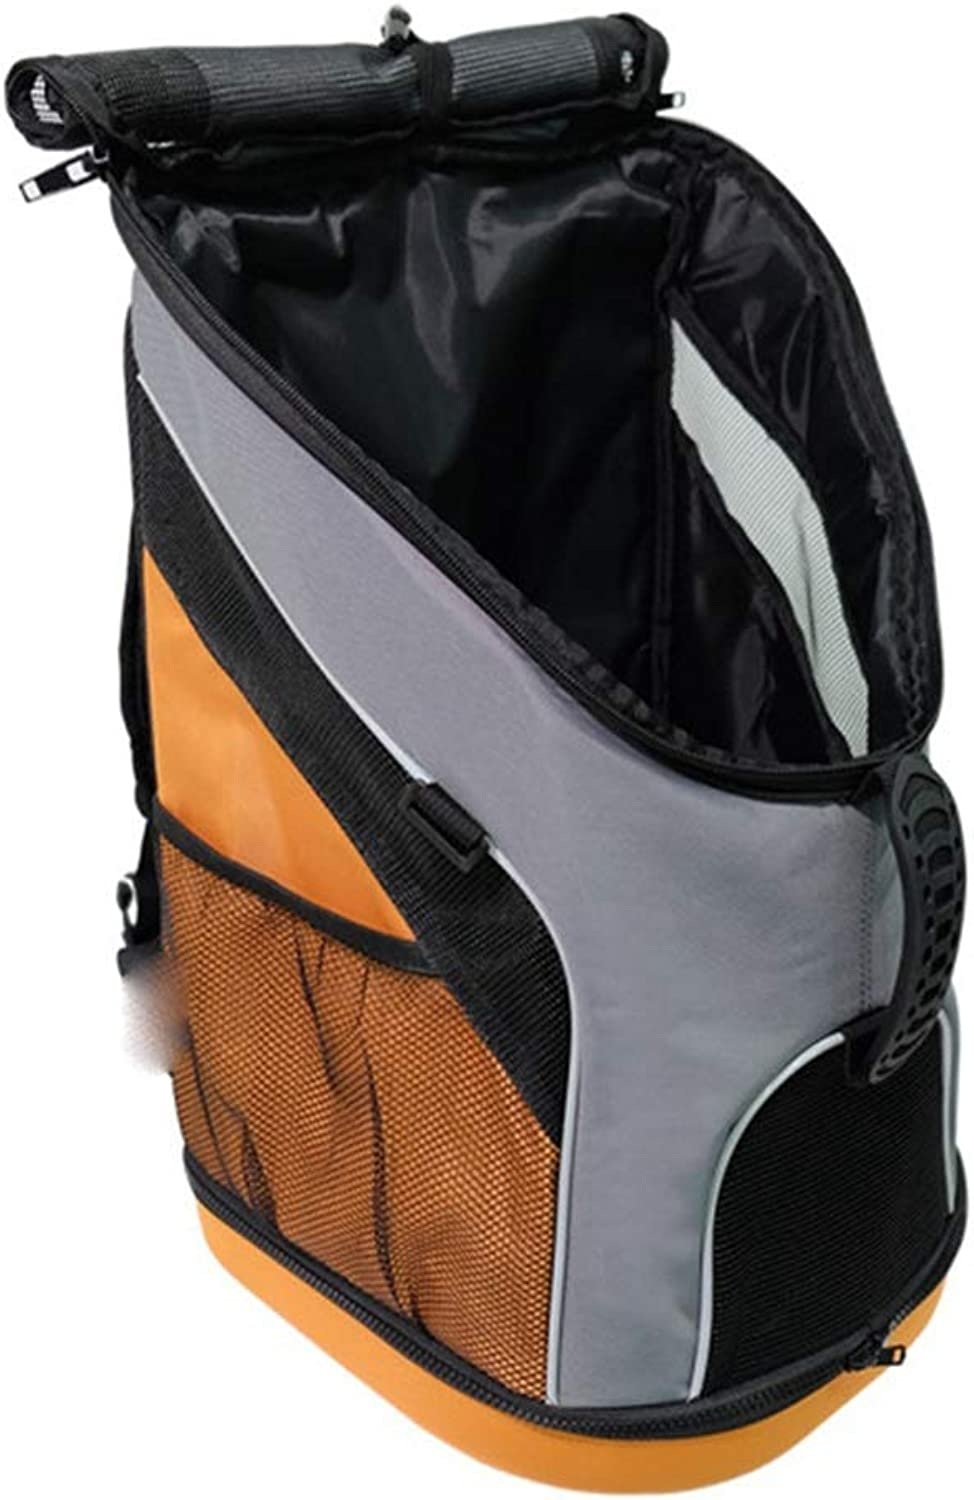 Byx Pet Backpack  Outing Bag Upright Horizontal Tote Bag Pet Carrying Bag Length 30 Width 30 Height 49cm Recommended Load 8KG Pet Backpack (color   B)